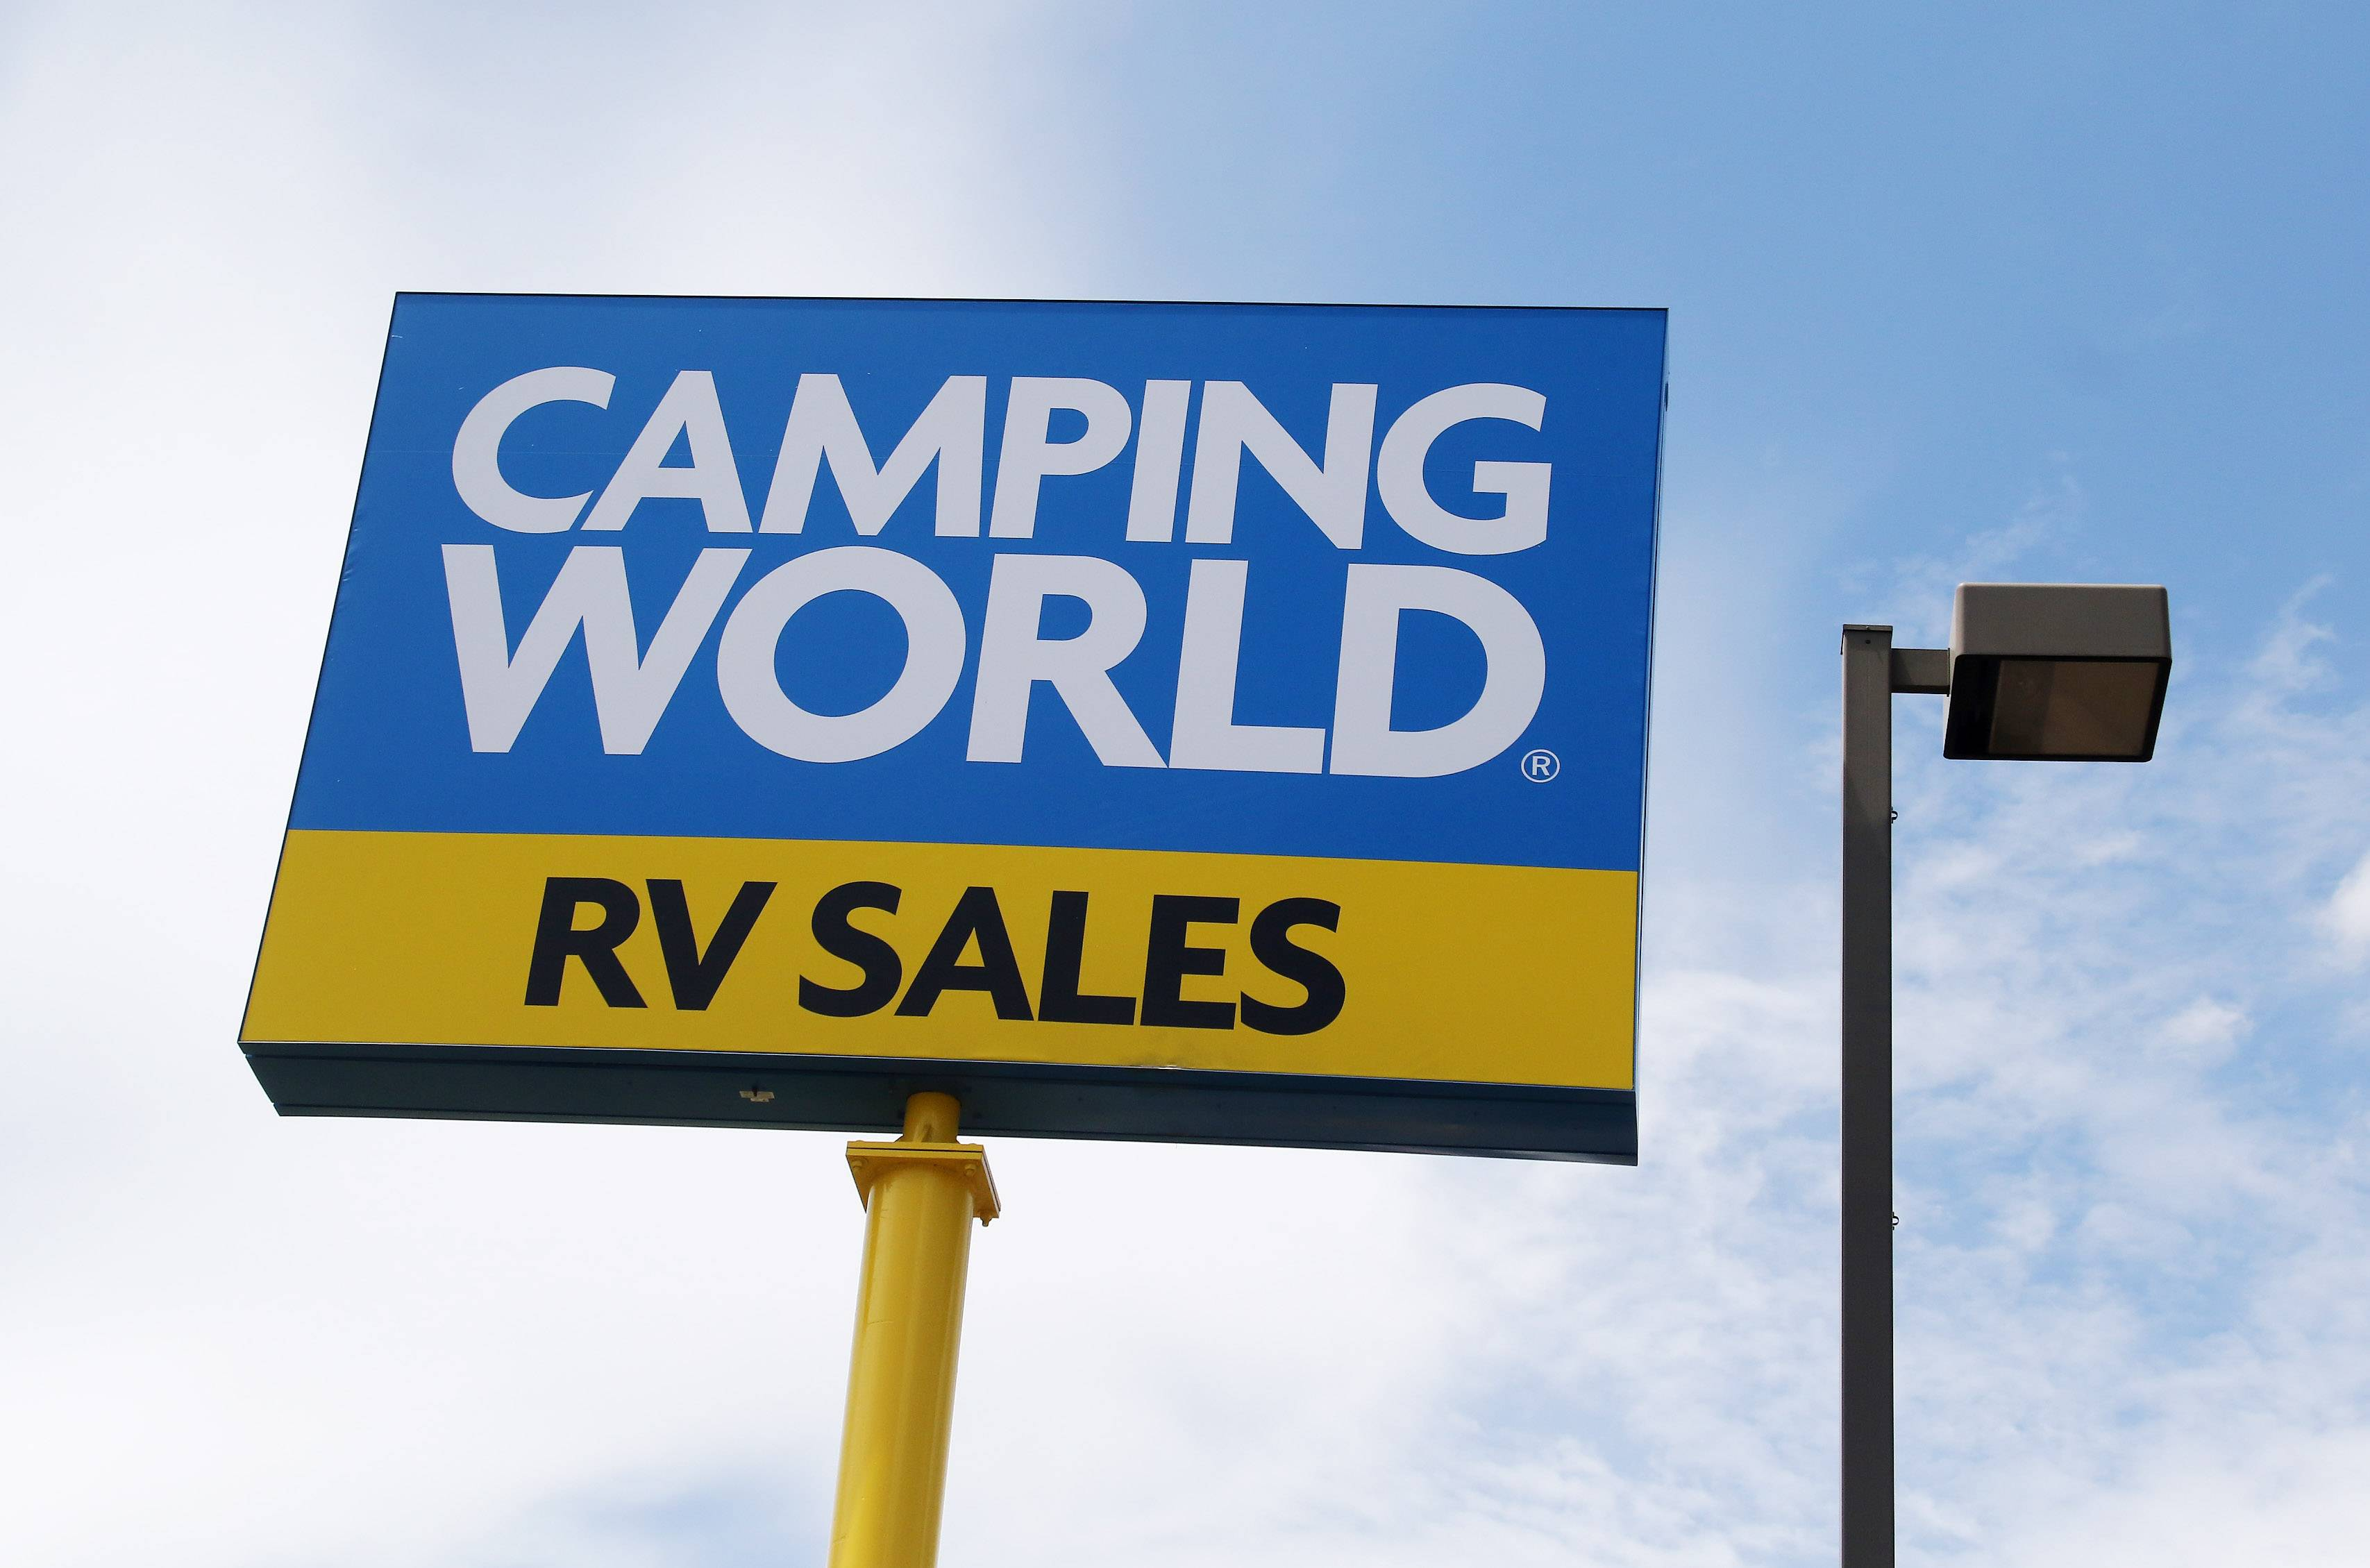 Camping World expands again in Florida